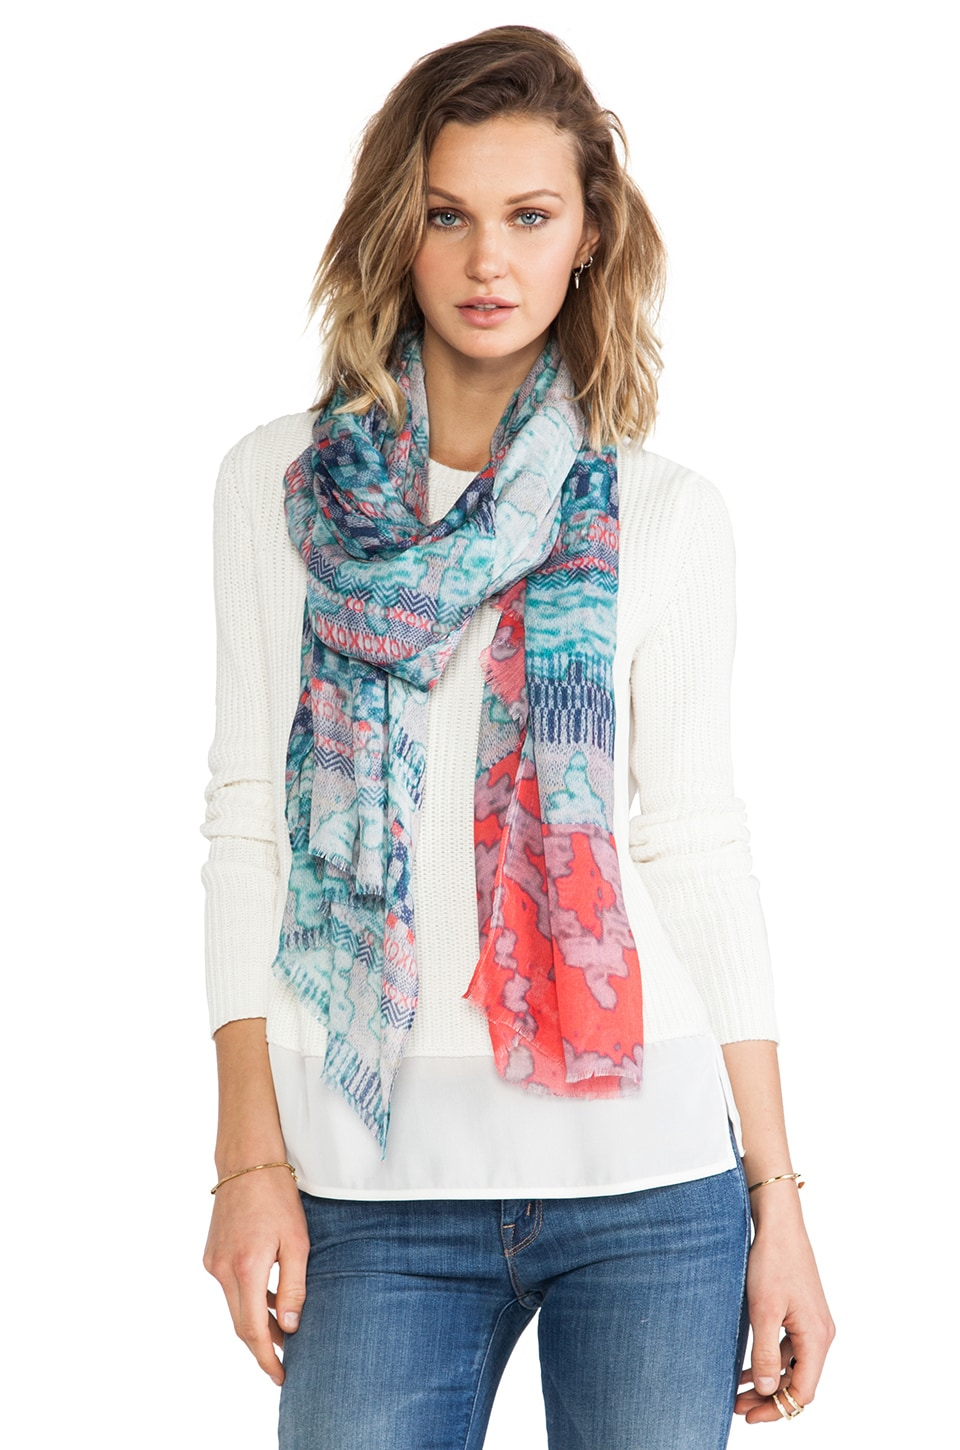 Twelfth Street By Cynthia Vincent Jacquard Scarf in Multi